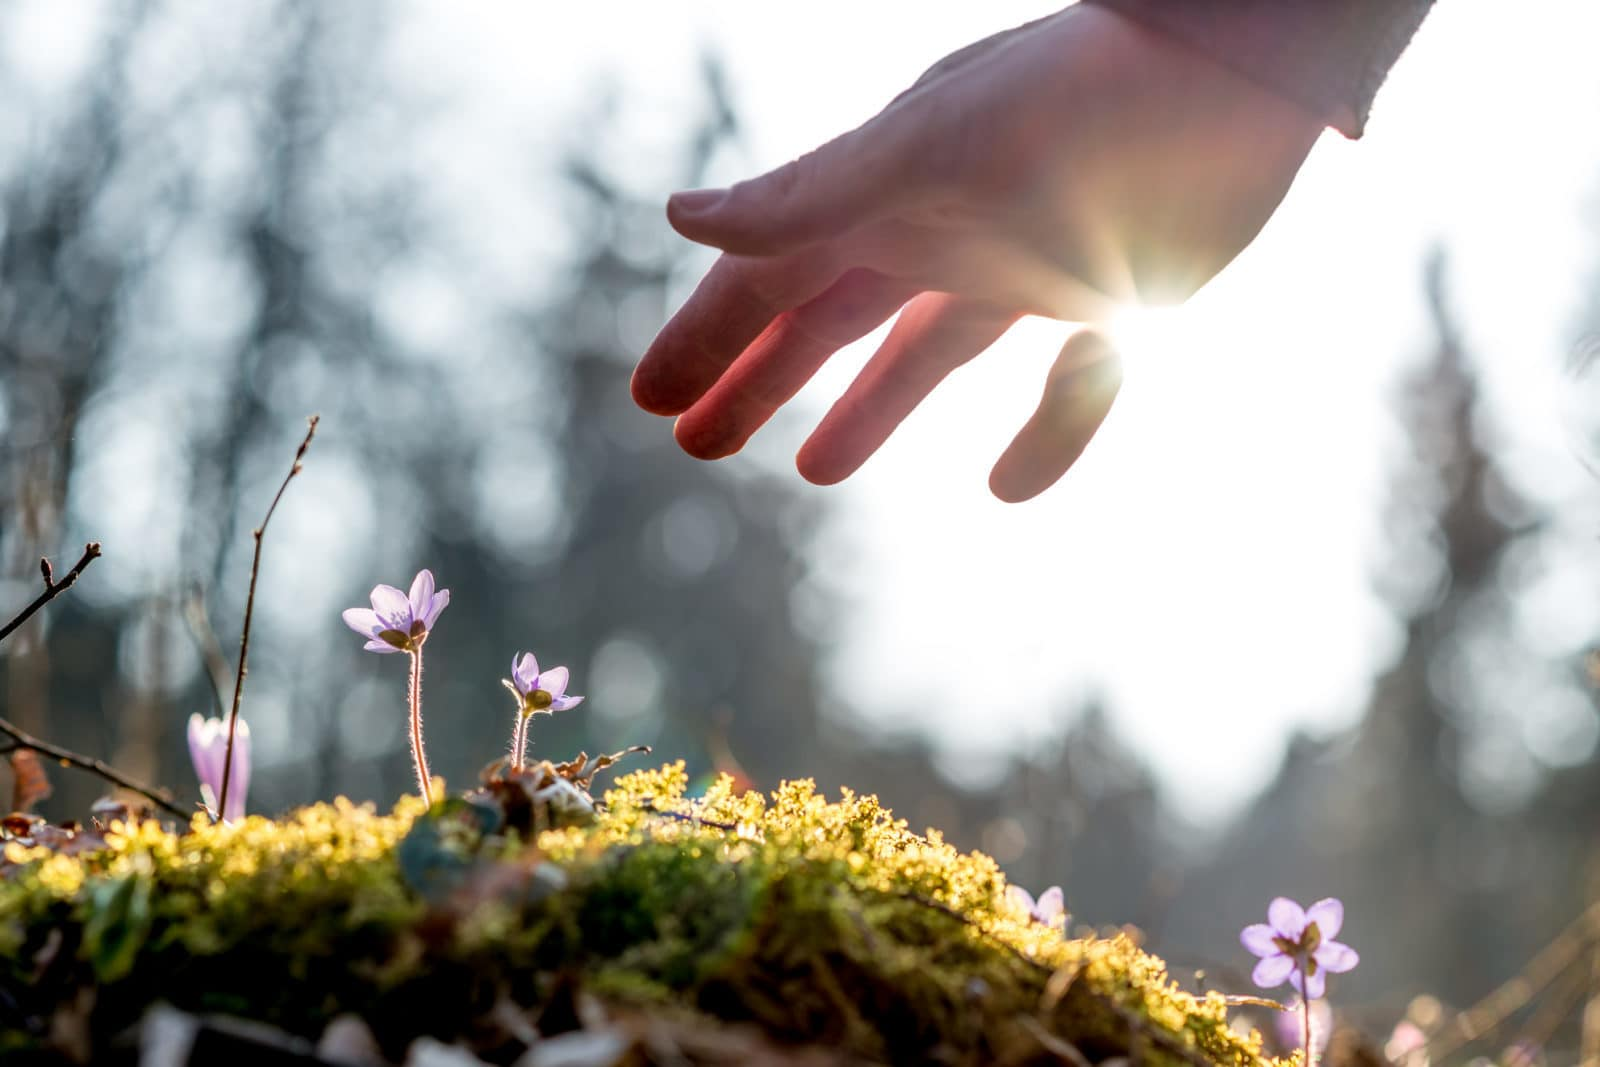 Hand above a mossy rock with new delicate blue flower